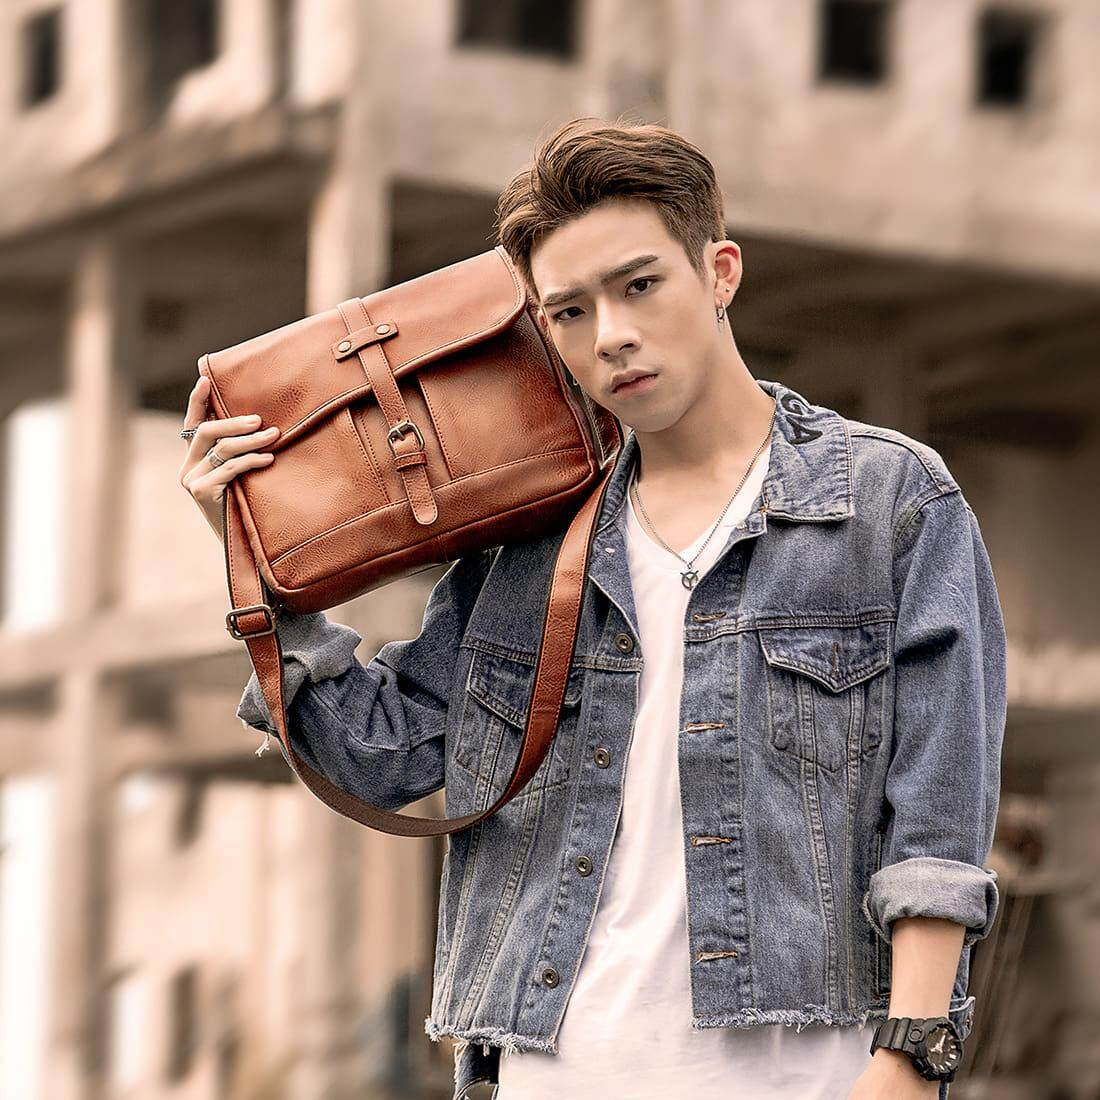 [M'sia Warehouse Direct] 2019 Korean Series Leather Men's Sling Bag Messenger Bag Cross Body Multifunction Casual Shoulder Pouch Handcarry Bag Lightweight Travel Bag Multipurpose Best Gift For Love One Kulit Halal